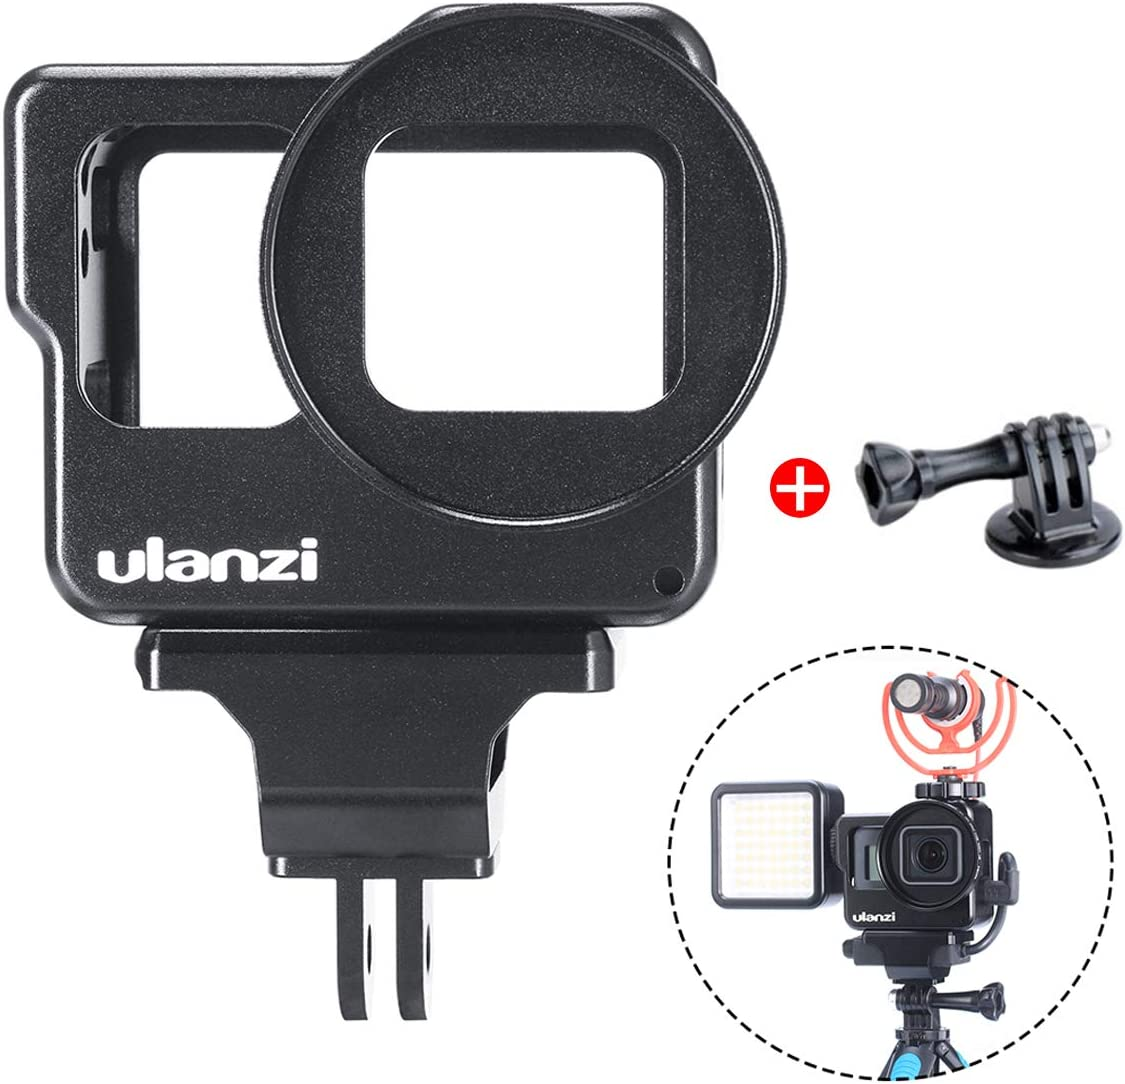 ULANZI V3 Aluminum Vlogging Housing Cage for Gopro Hero 7/6/5, Protective Multiunctional Metal Case Frame for GoPro Audio Mic Adapter 2 Cold Shoe Mount 1/4'' Go Pro Adapter